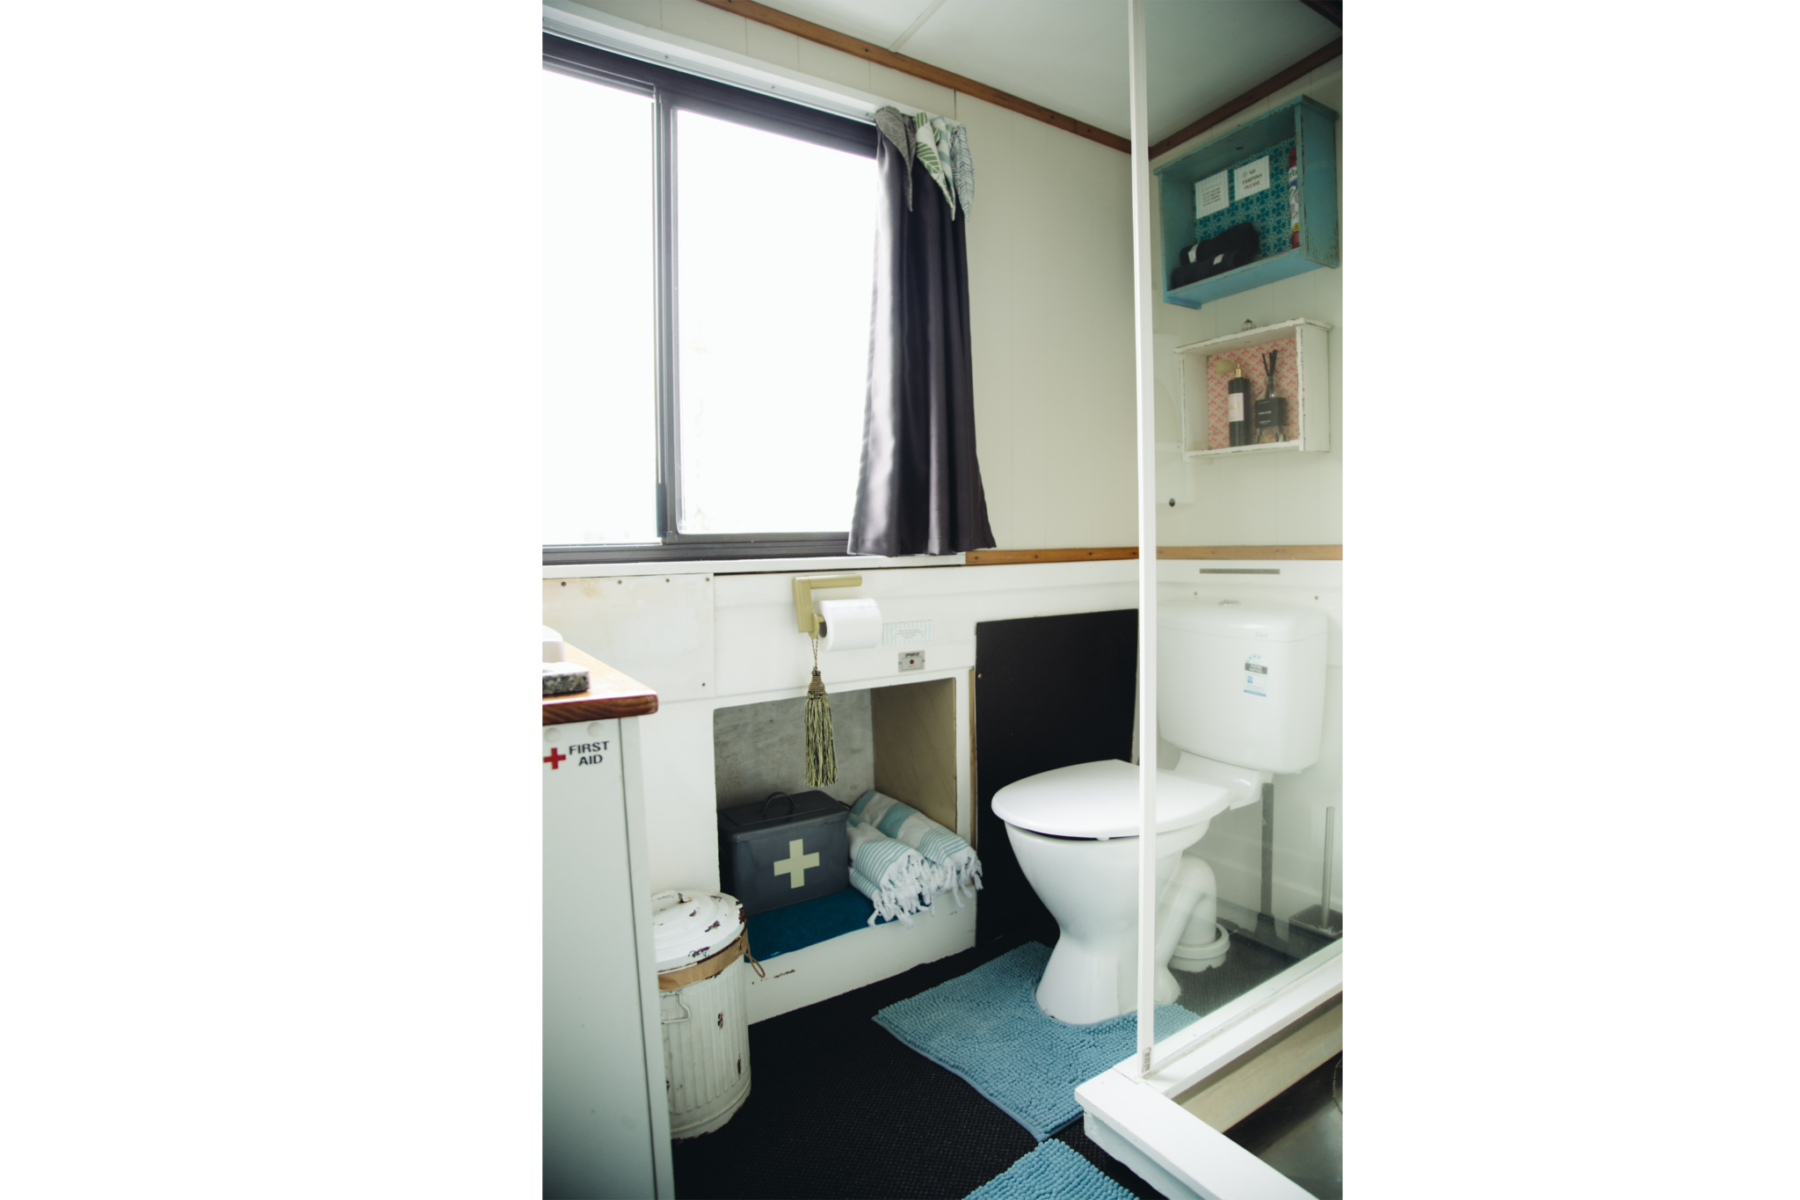 Fully contained shower and toilet facilities